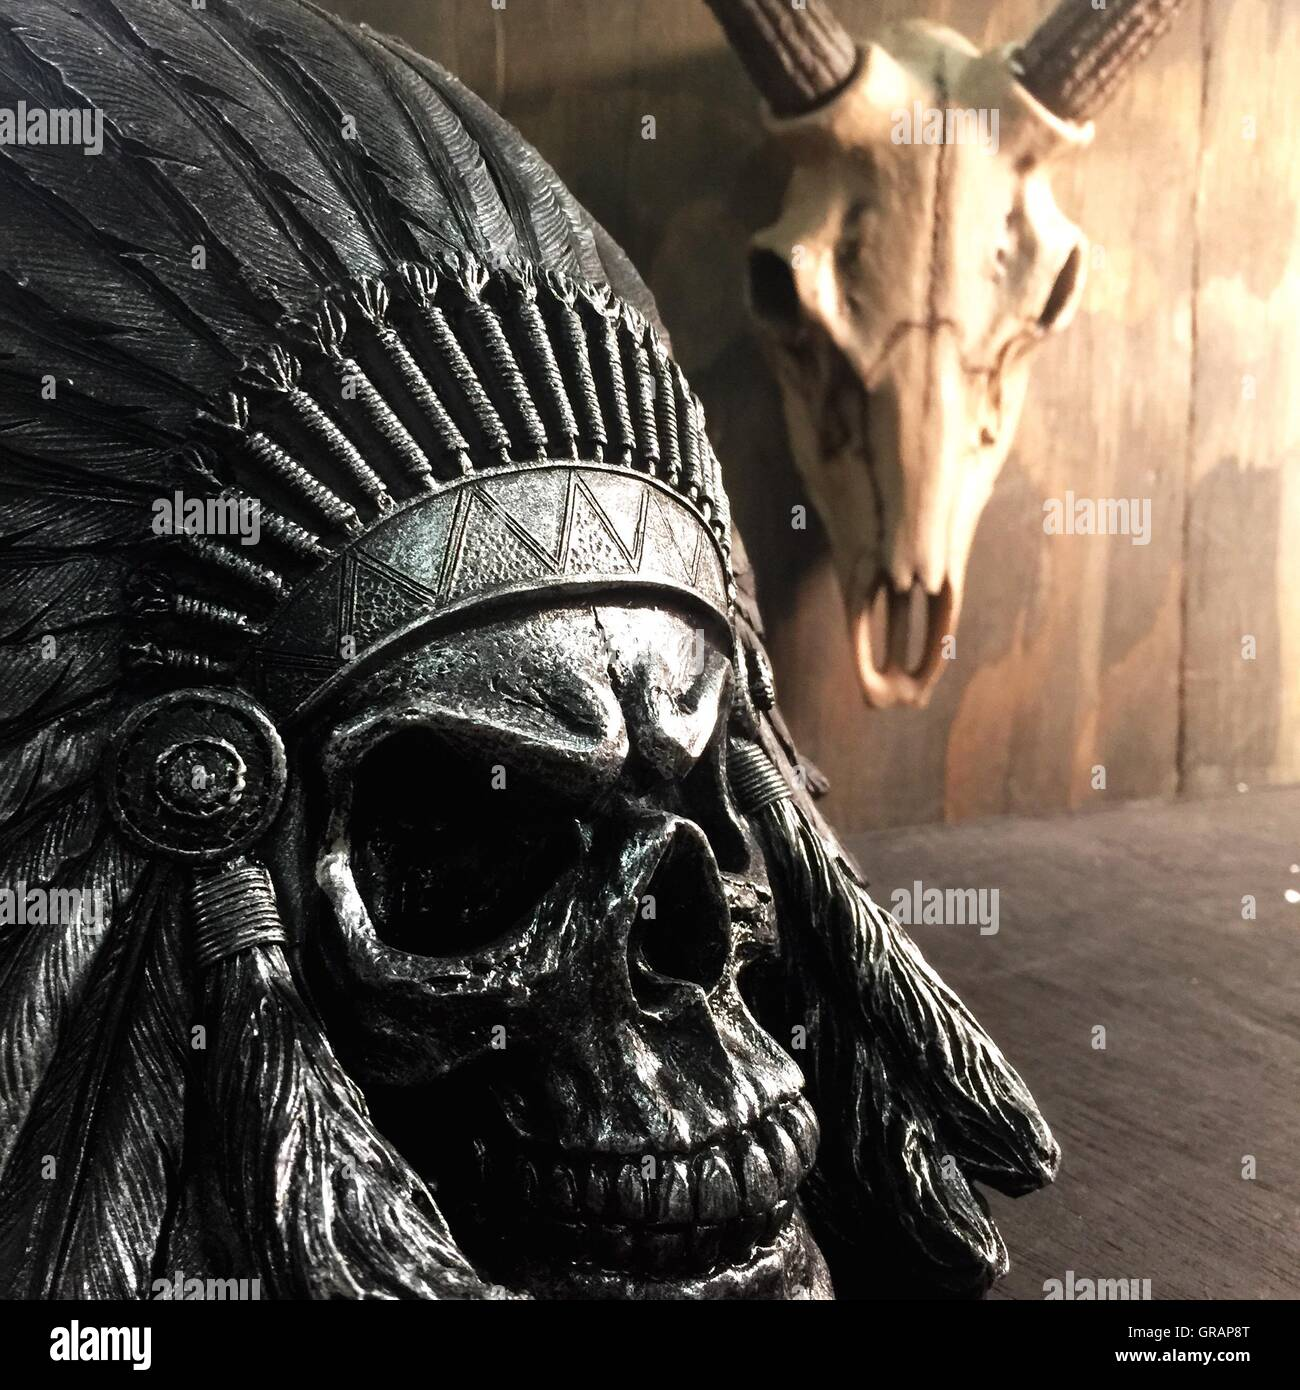 Close-Up Of Metallic Chief Skull And Animal Skull In Room - Stock Image